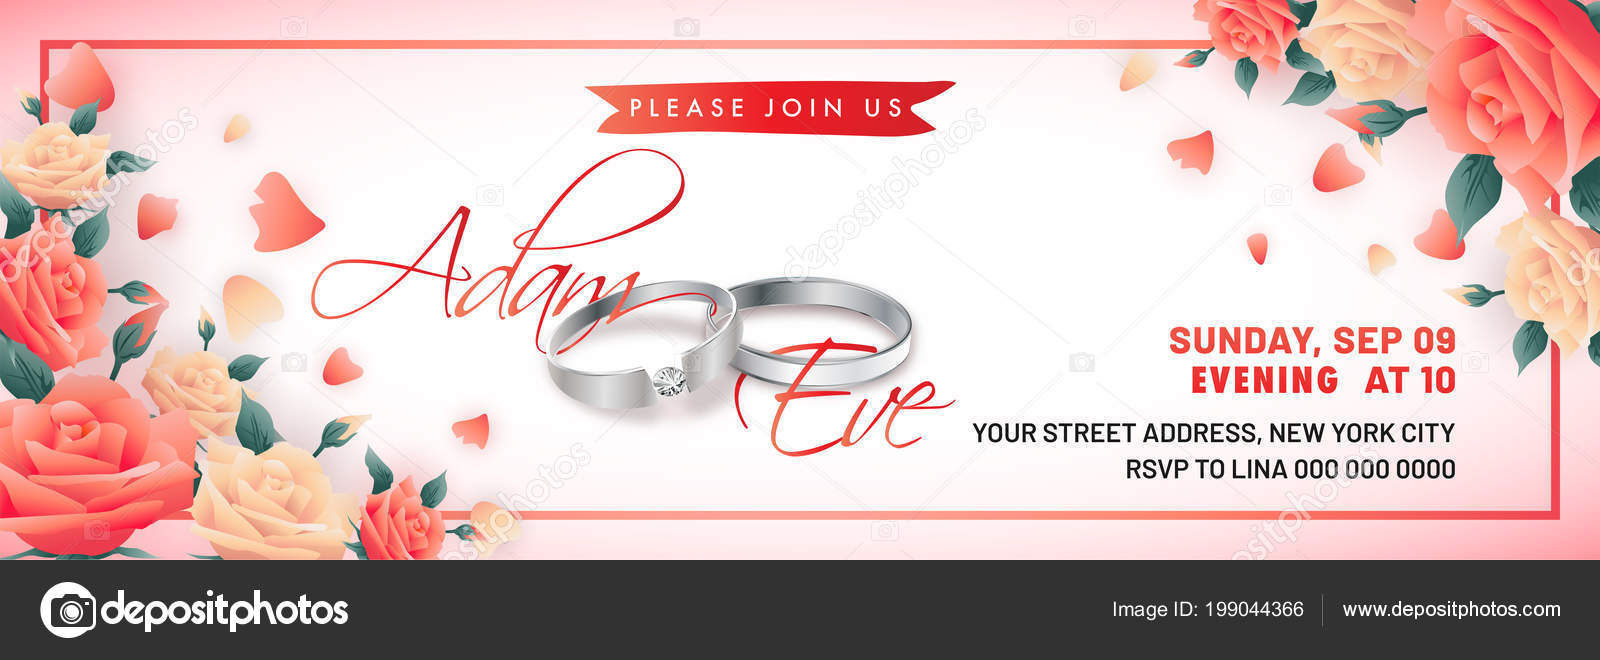 Images Engagement Banner Engagement Banner Design Wedding Rings Beautiful Roses Stock Vector C Alliesinteract 199044366